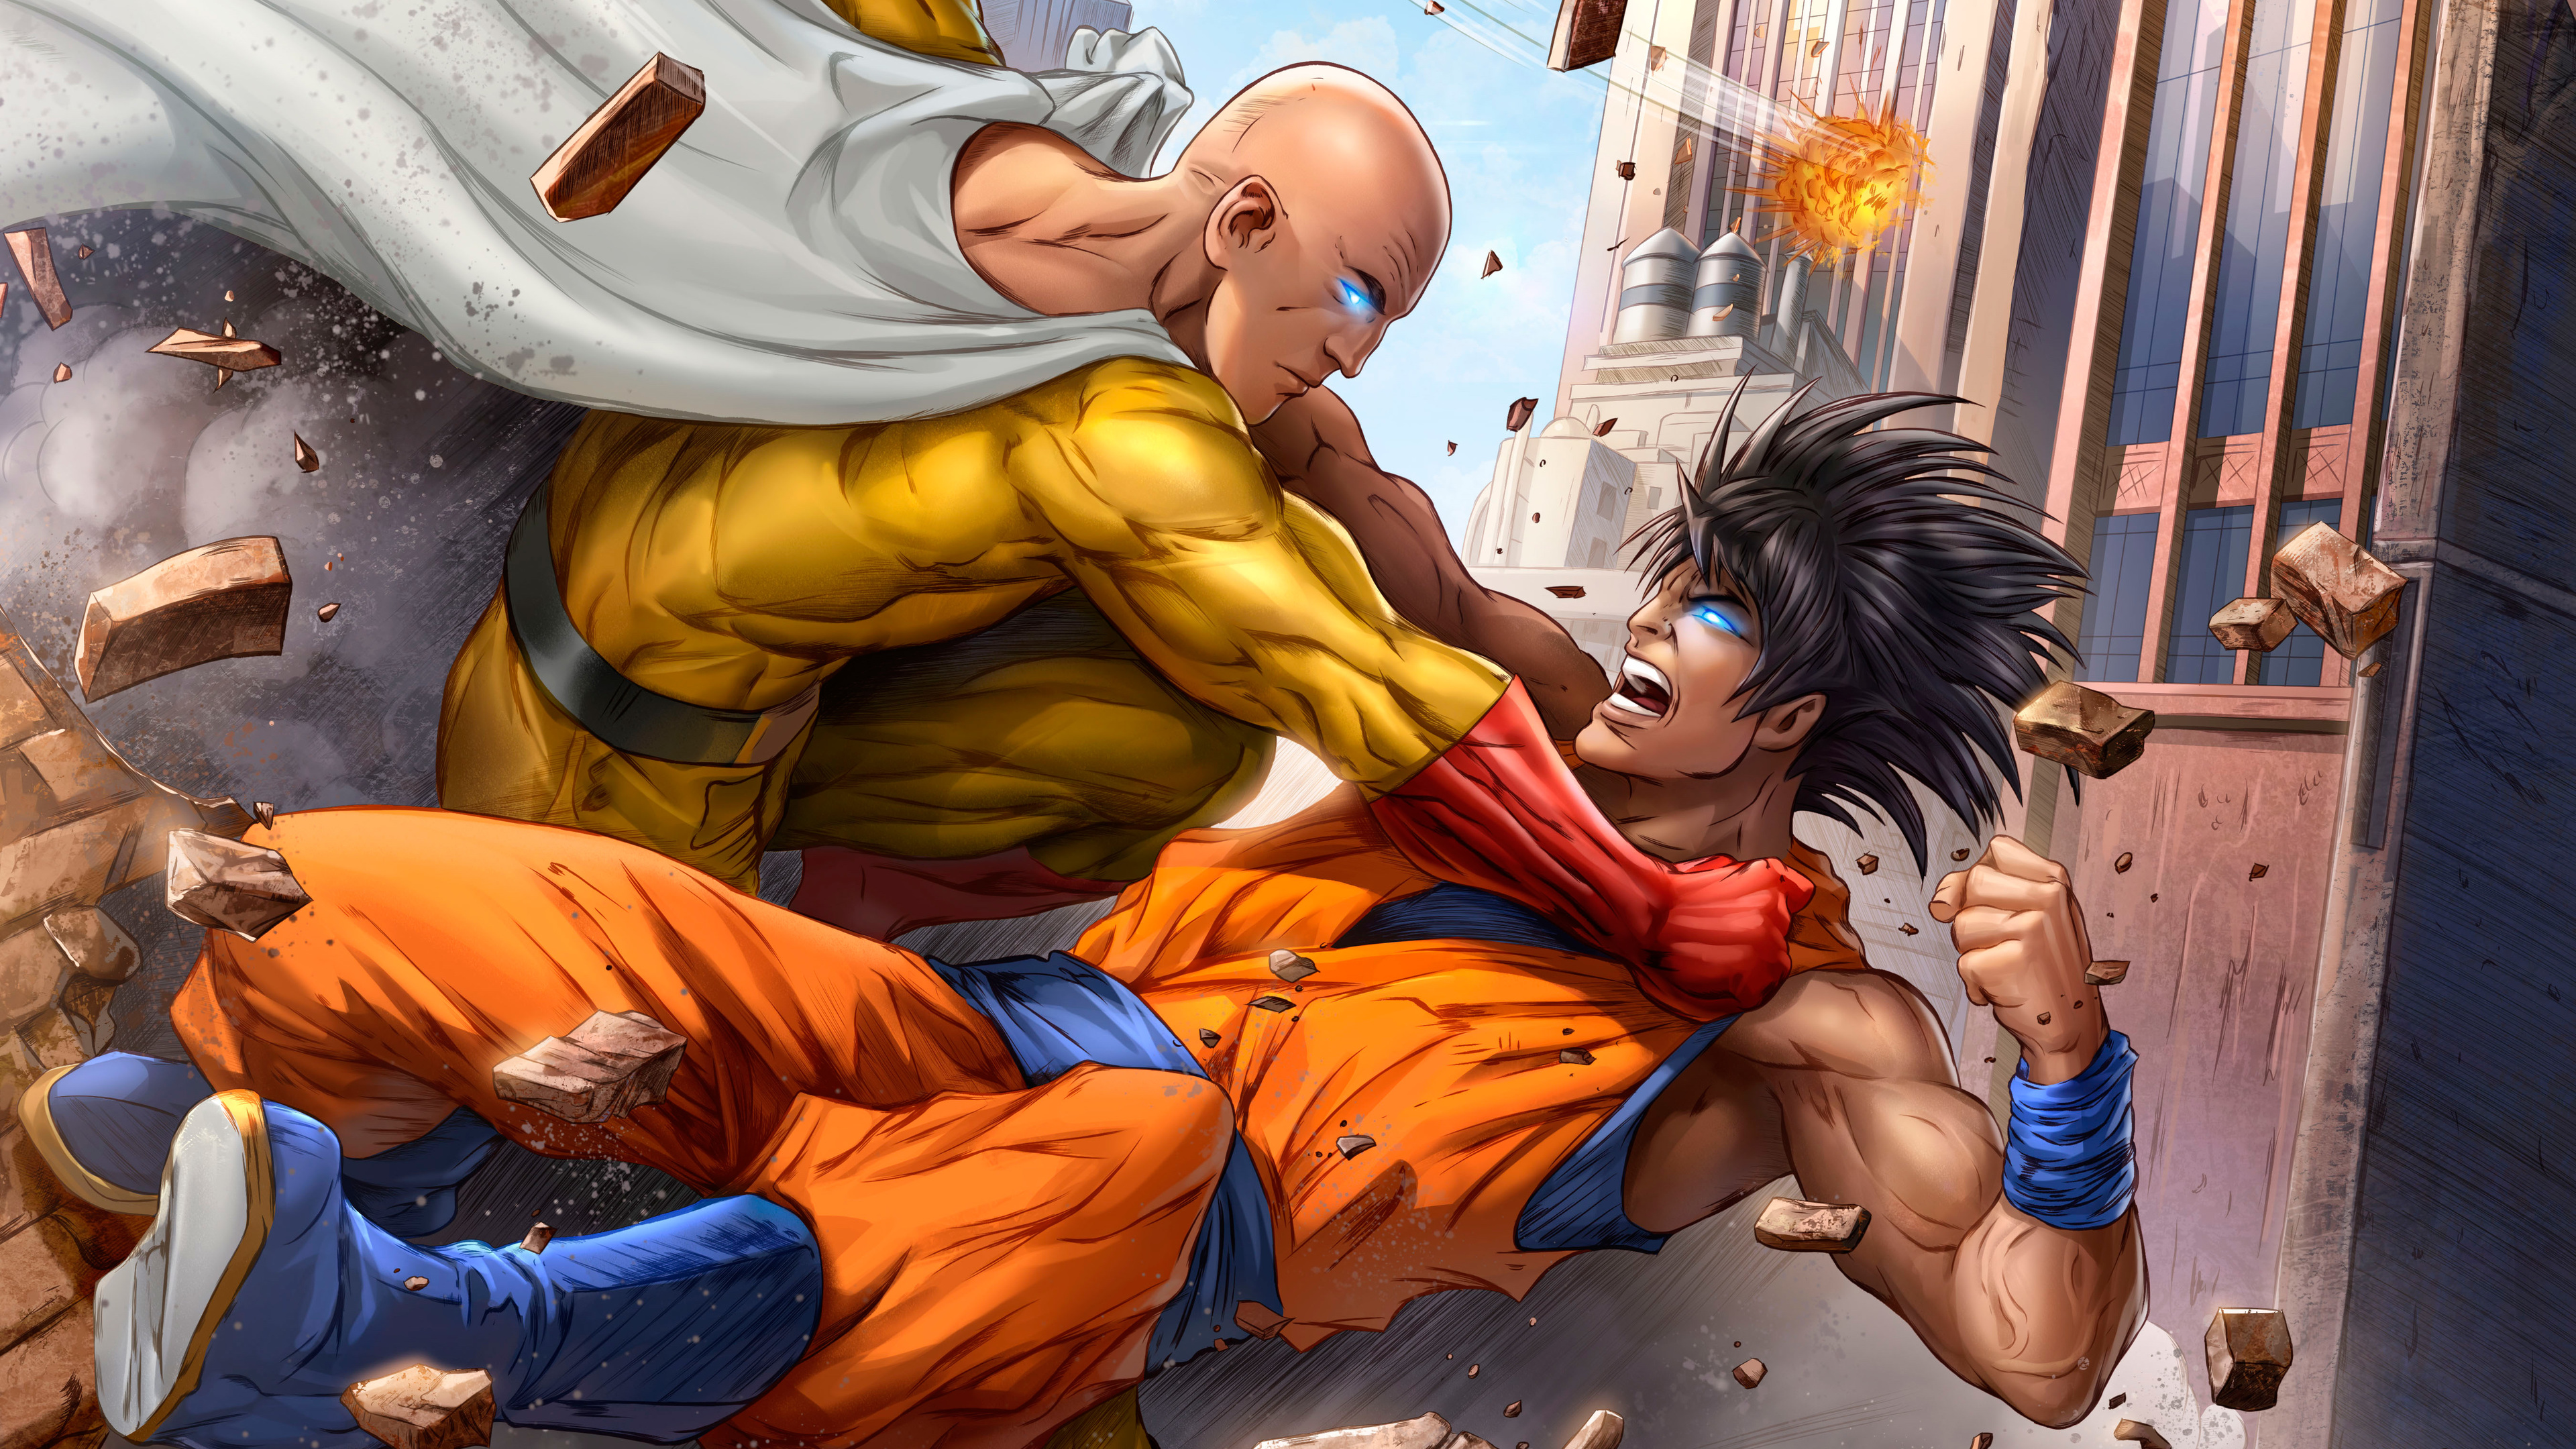 goku and one punch man 5k art 1537646015 - Goku And One Punch Man 5k Art - superheroes wallpapers, one punch man wallpapers, hd-wallpapers, goku wallpapers, artwork wallpapers, anime wallpapers, 5k wallpapers, 4k-wallpapers